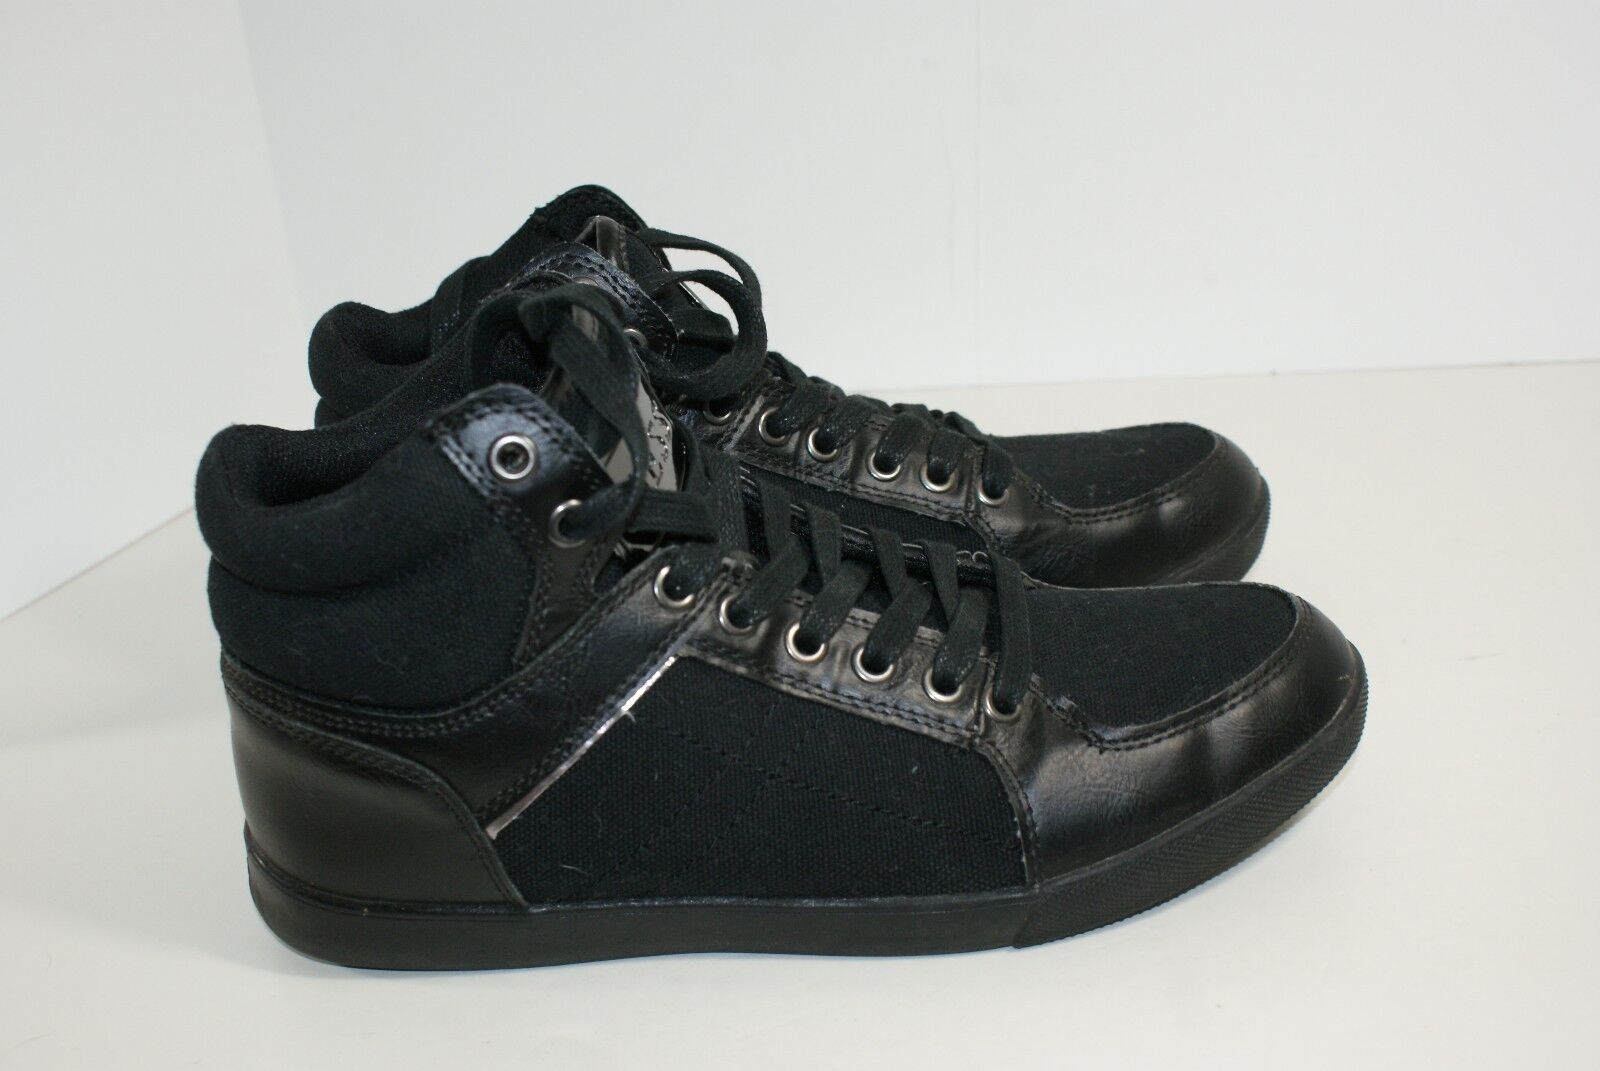 Guess MG Jarred Men's Size 8 Black Tennis Sport Sneaker Athletic Shoes